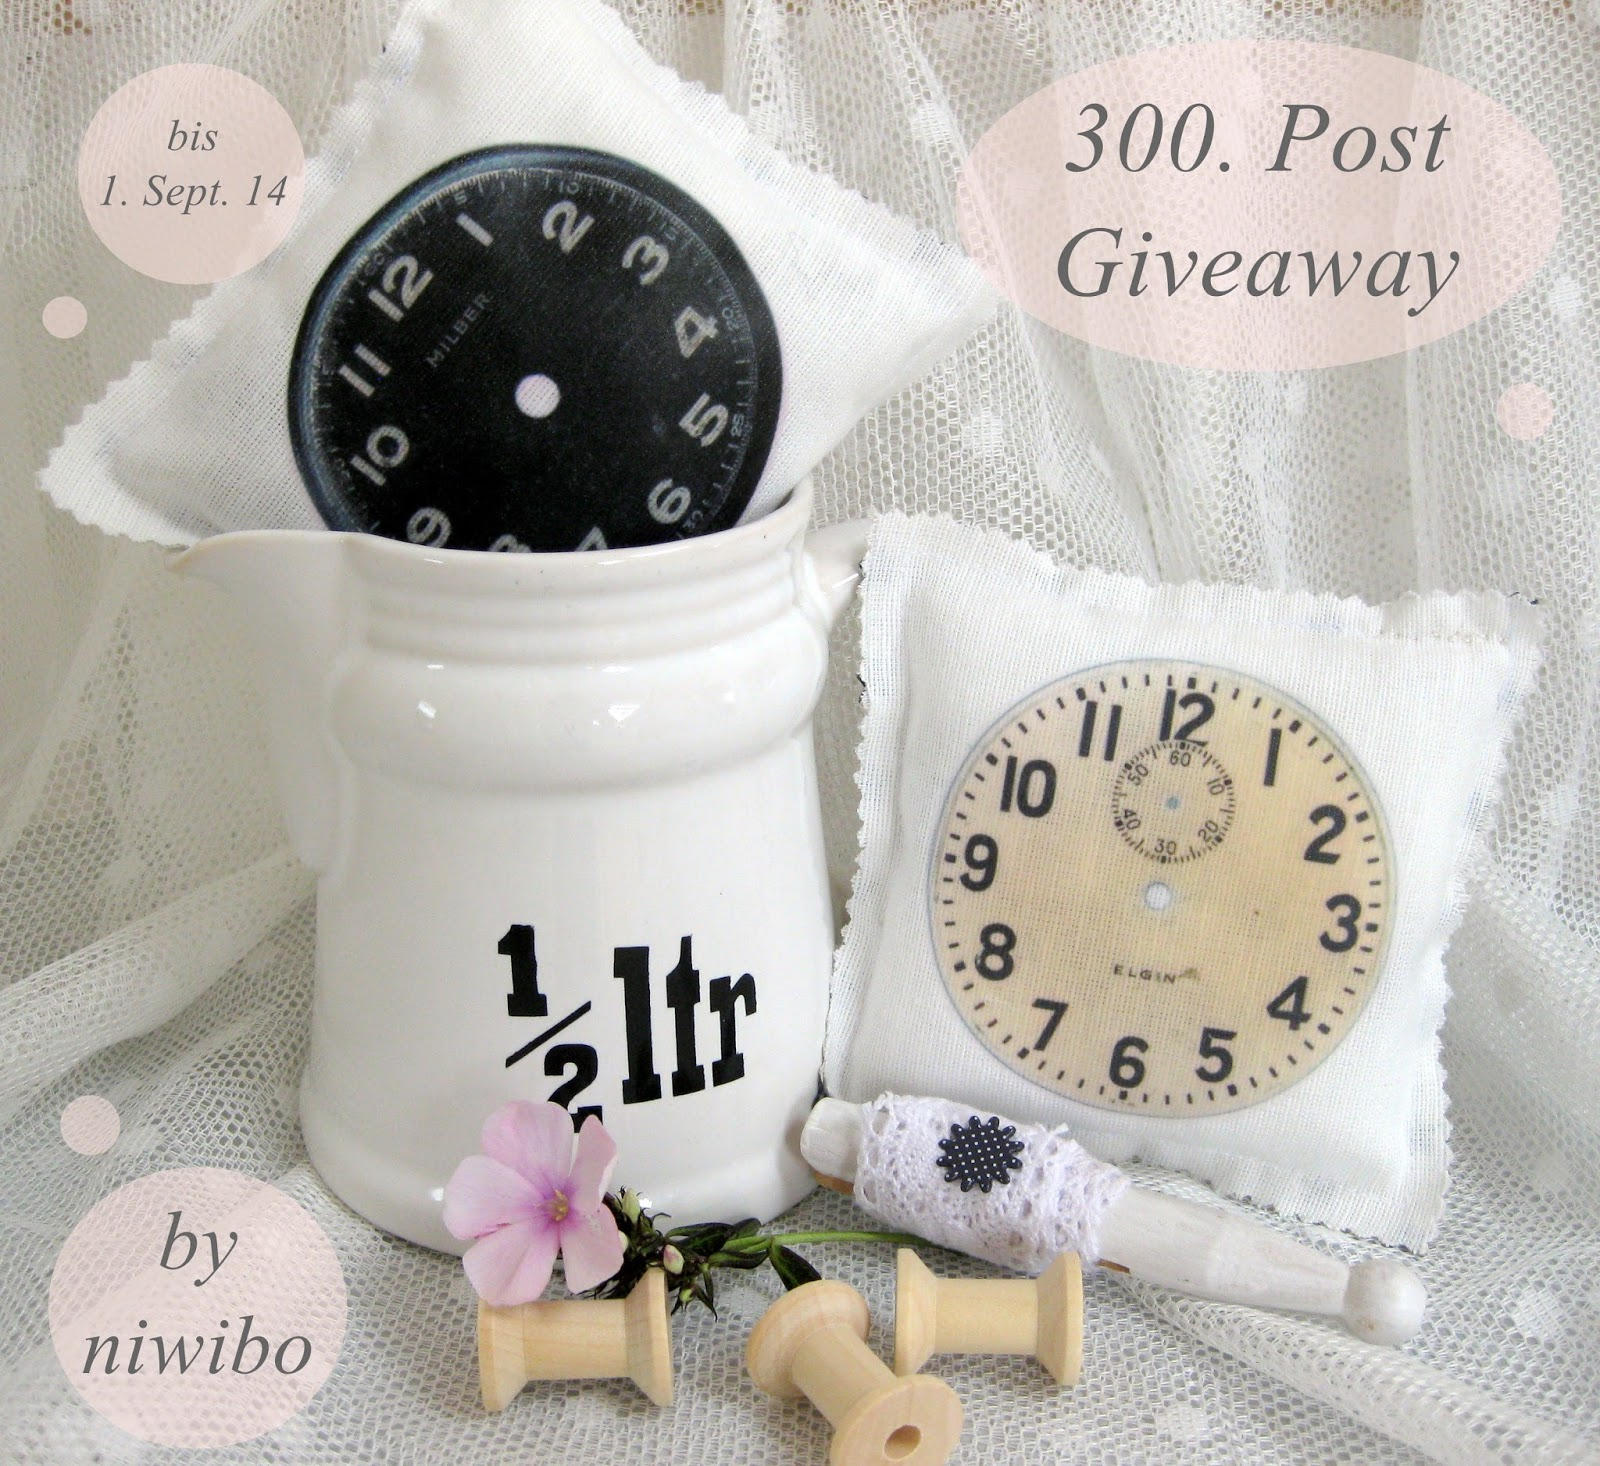 Giveaway by Nicole